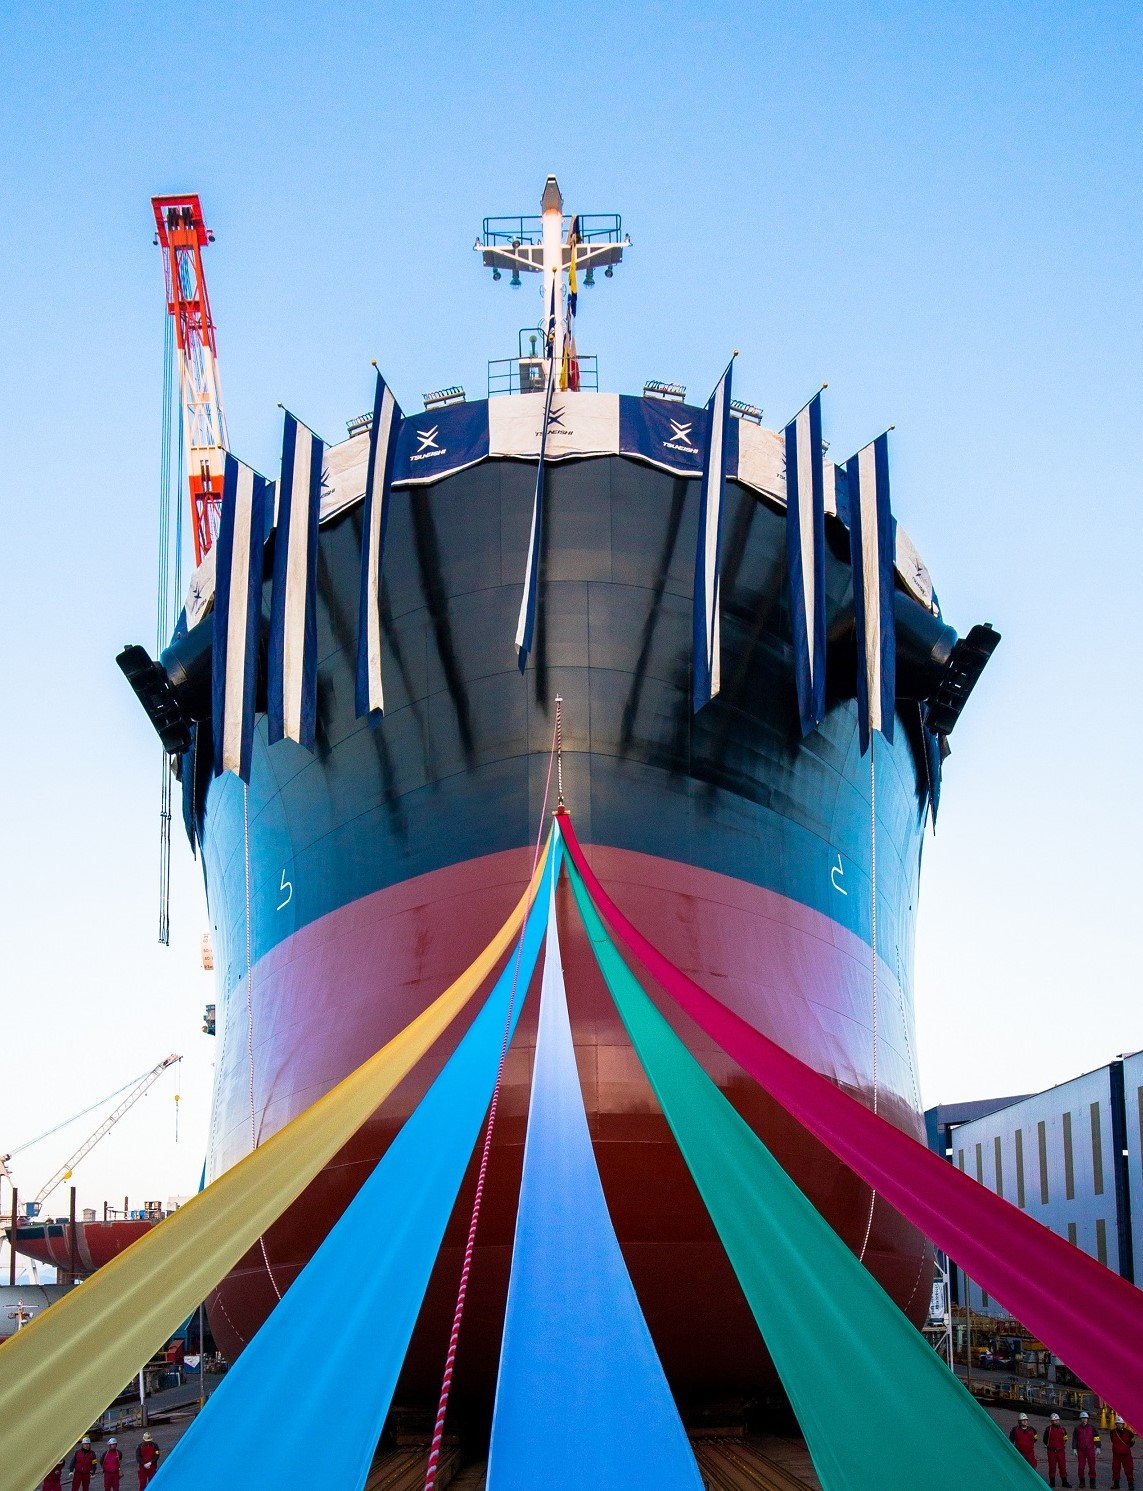 TSUNEISHI SHIPBUILDING  82BC Launching Ceremony Will Open to the Public on September 20th, 2018